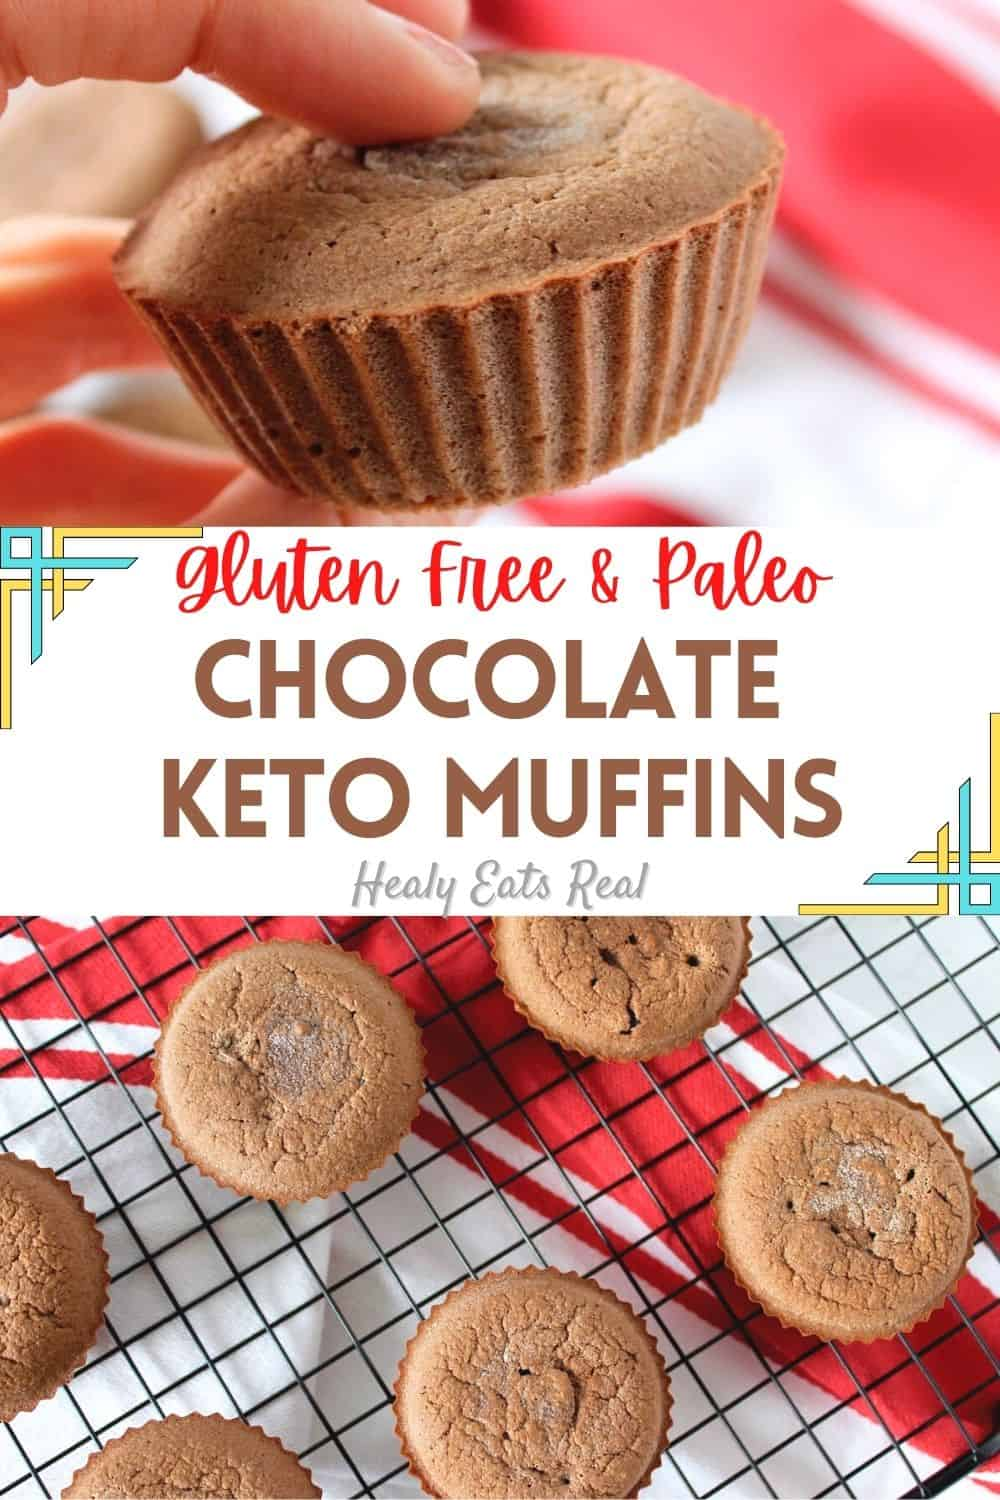 Keto Chocolate Muffins with Coconut Flour